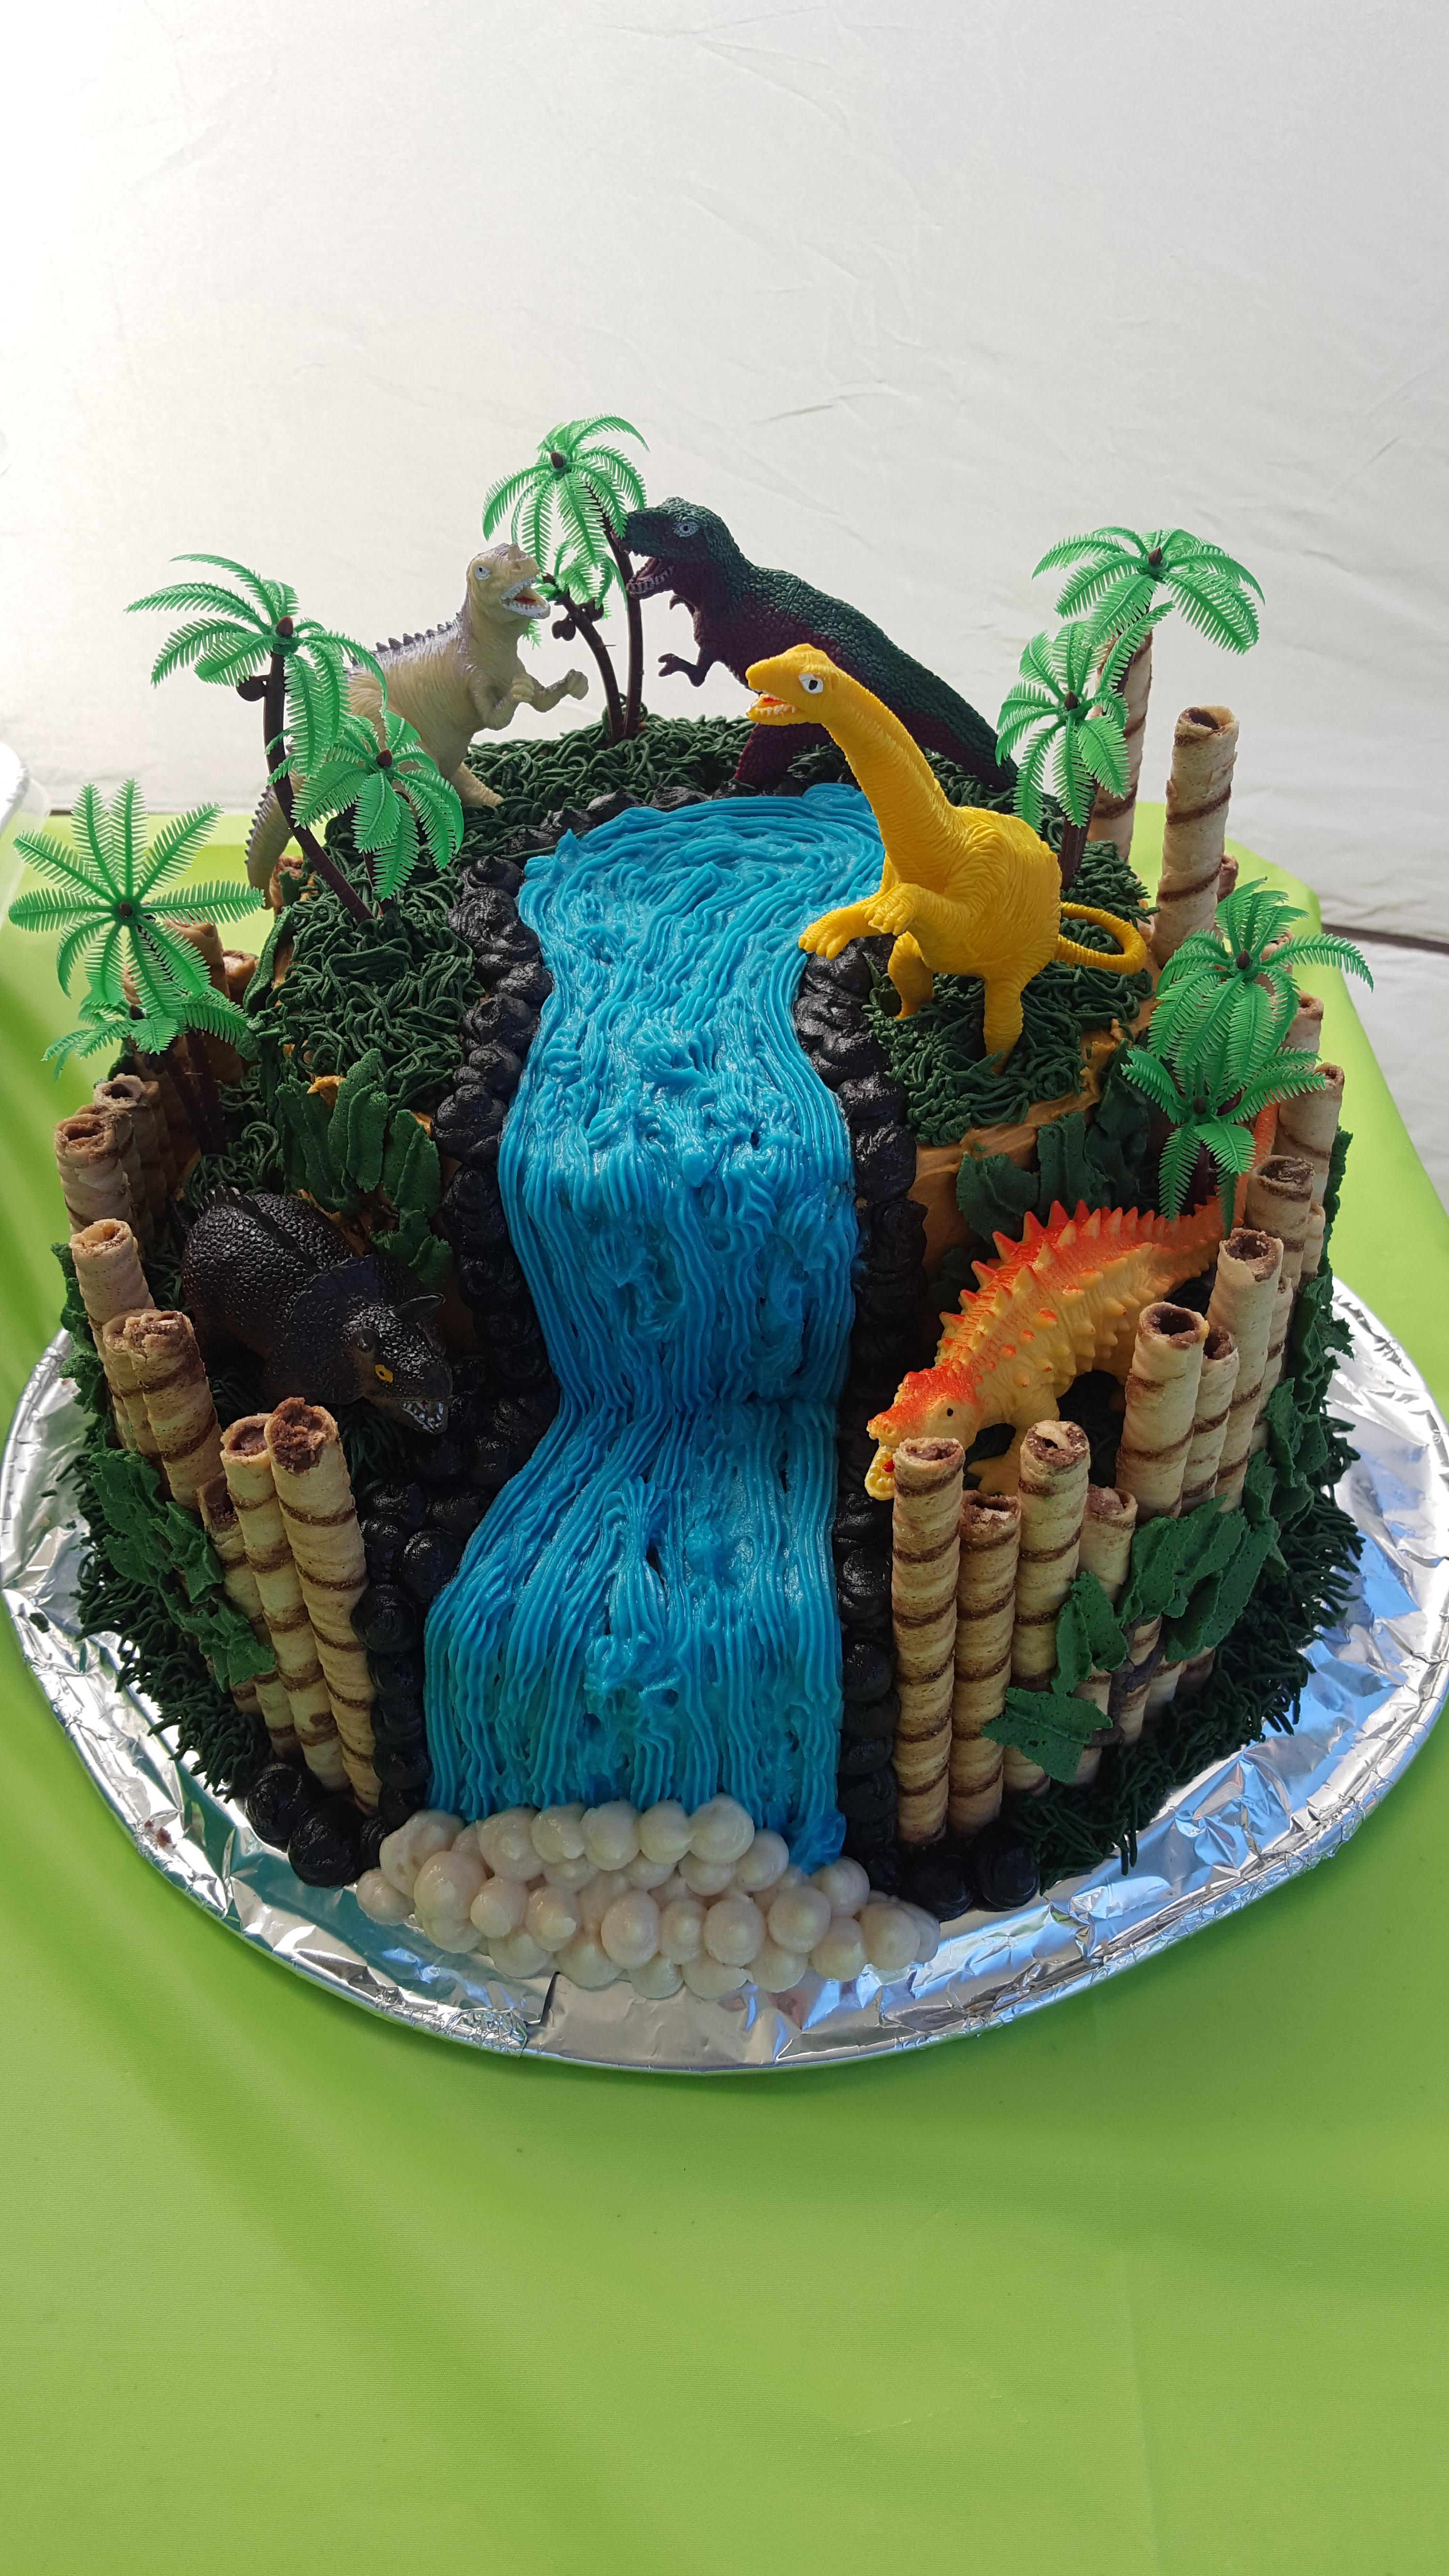 My Sons Bday Cake Today He Wanted A Dino Theme Borrowed Idea